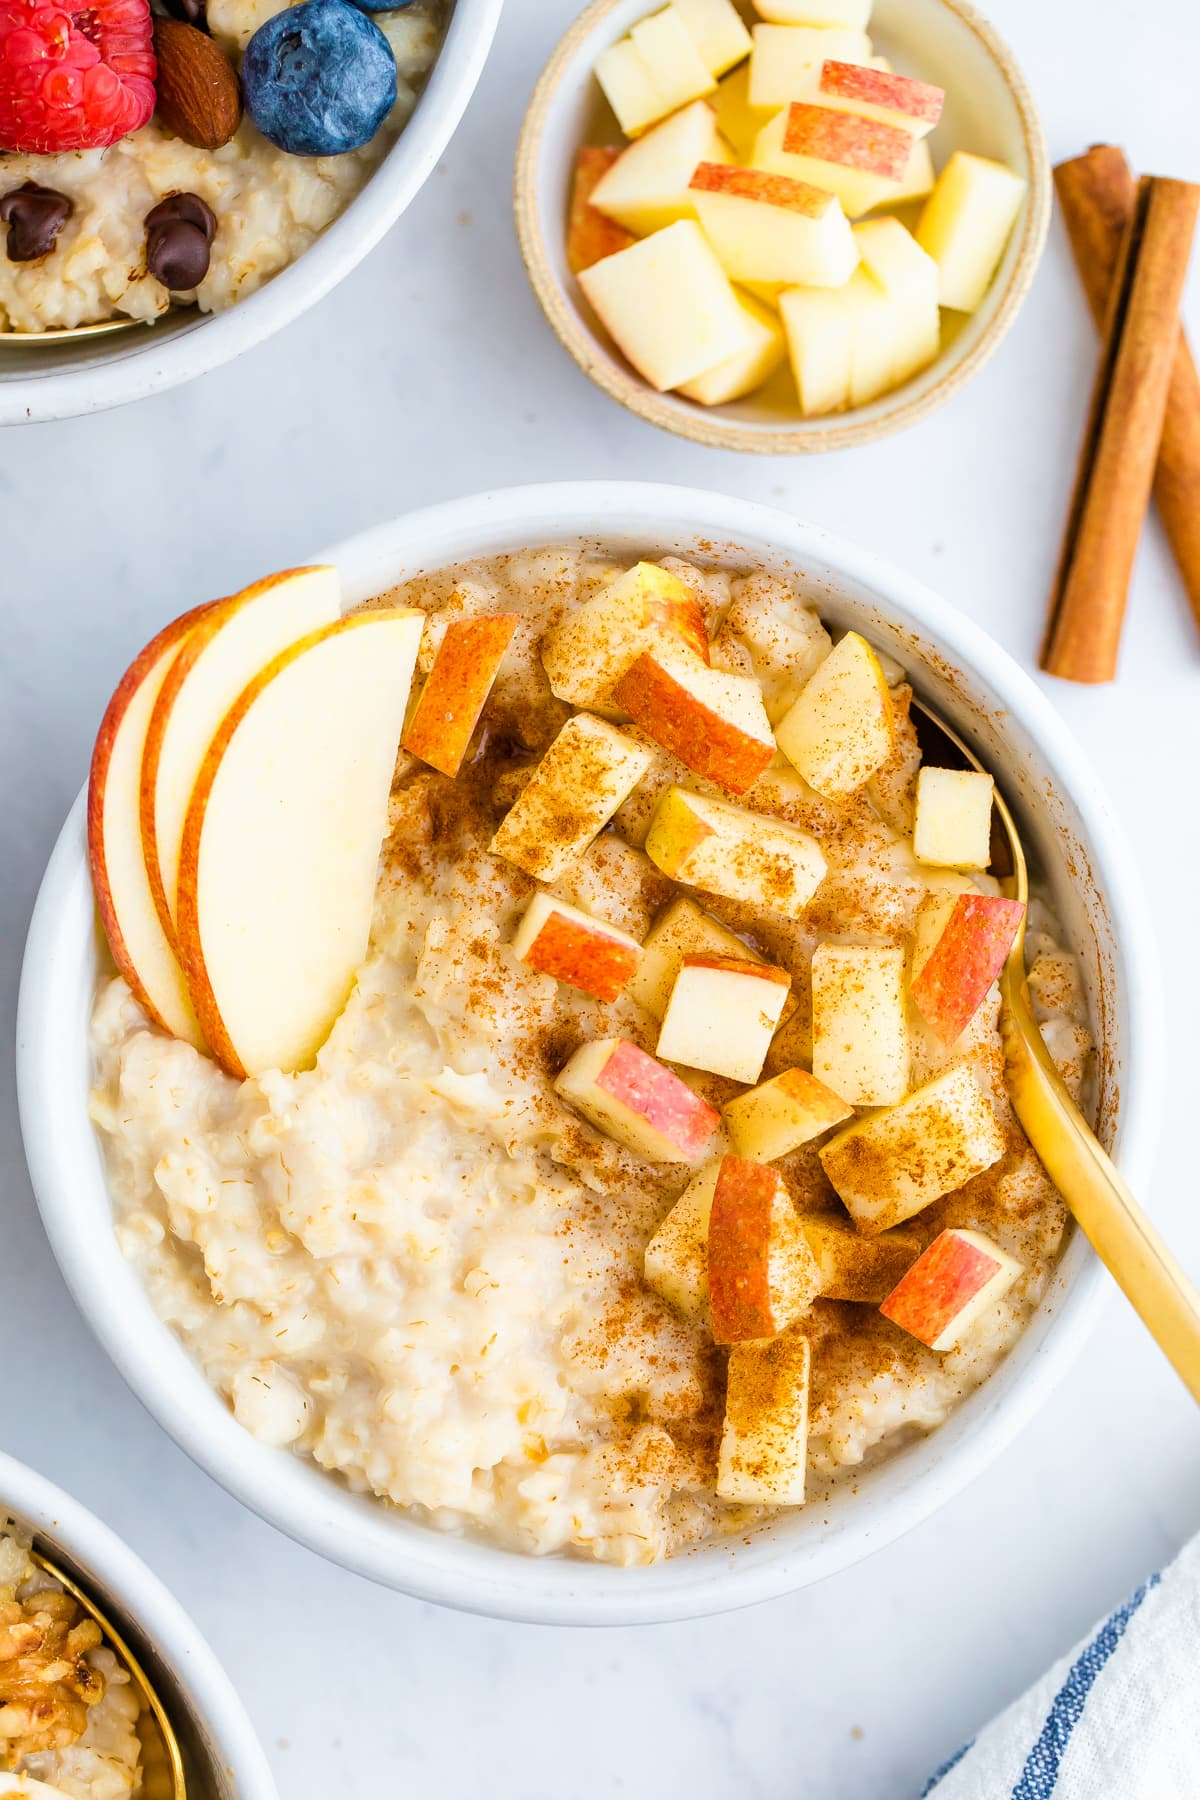 Bowl of oatmeal topped with apples and cinnamon.